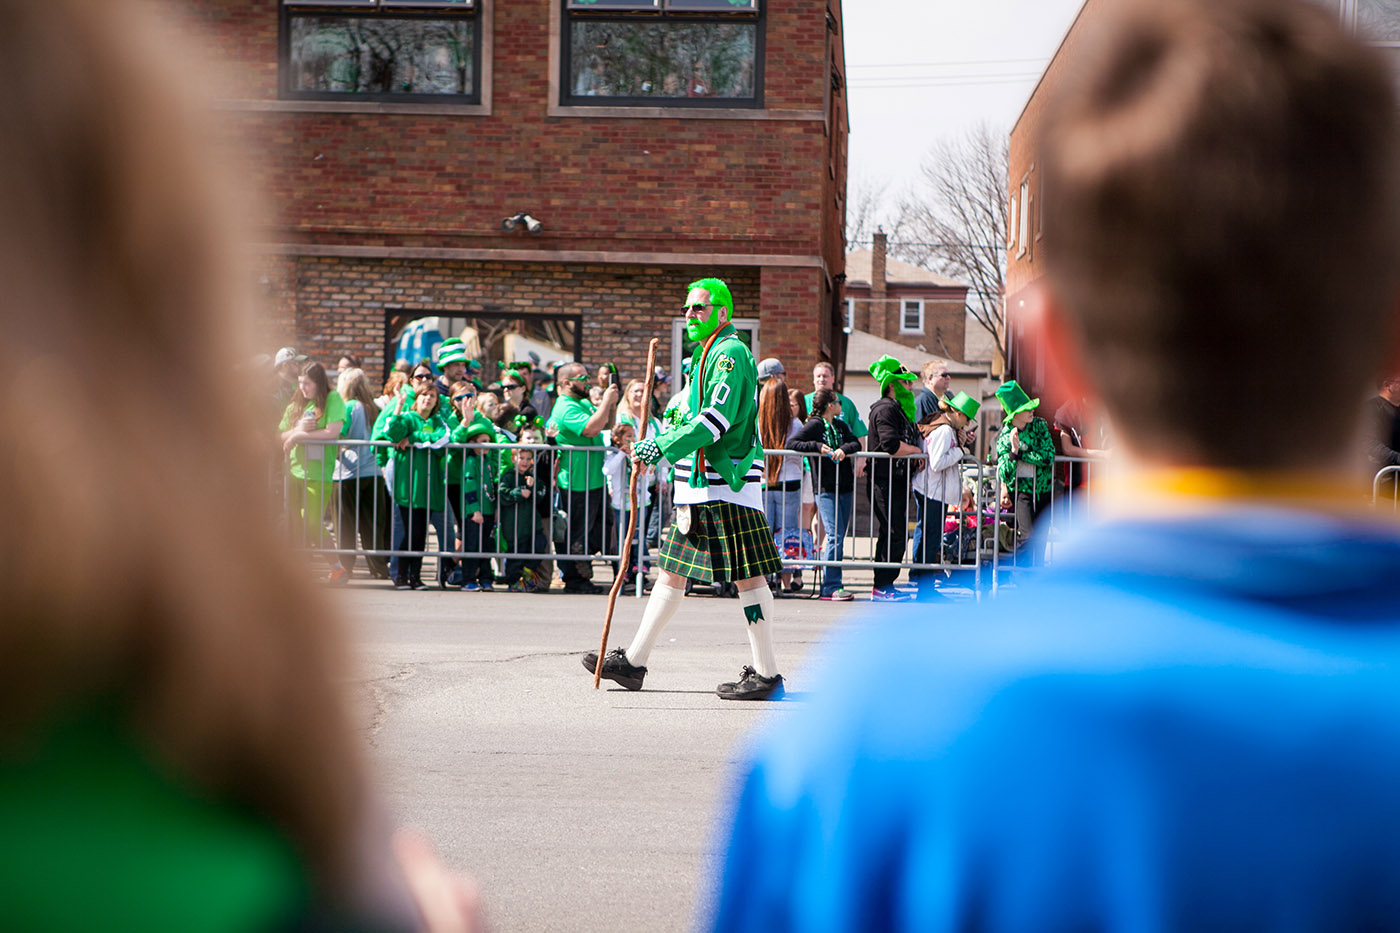 Green hair, green beard, at the Chicago South Side Irish Parade 2015 - St. Patrick's Day